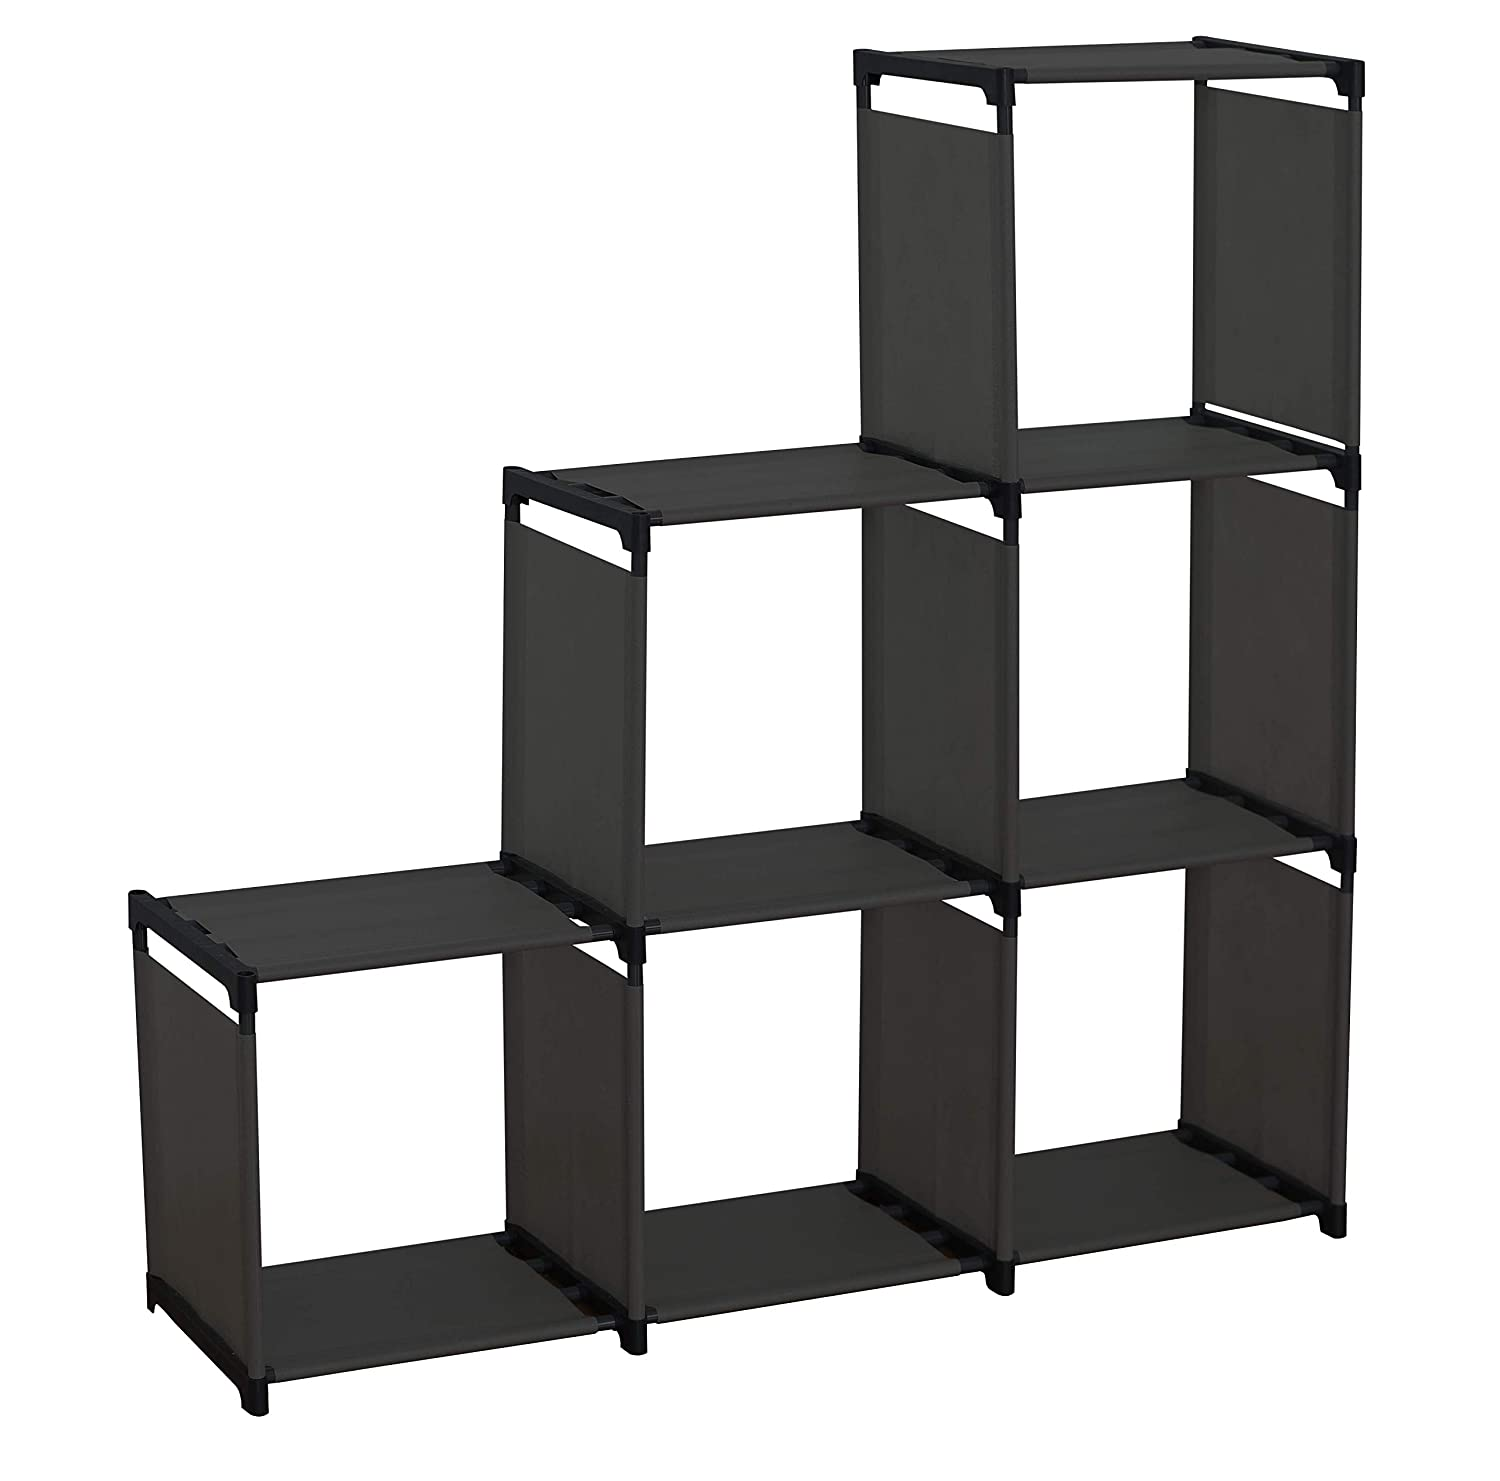 74b47e1c182e Farberware Cube Storage Closet Organizer Durable East to Clean Non-Woven  Shelves – No Tools Required (6 Cube Shelves)